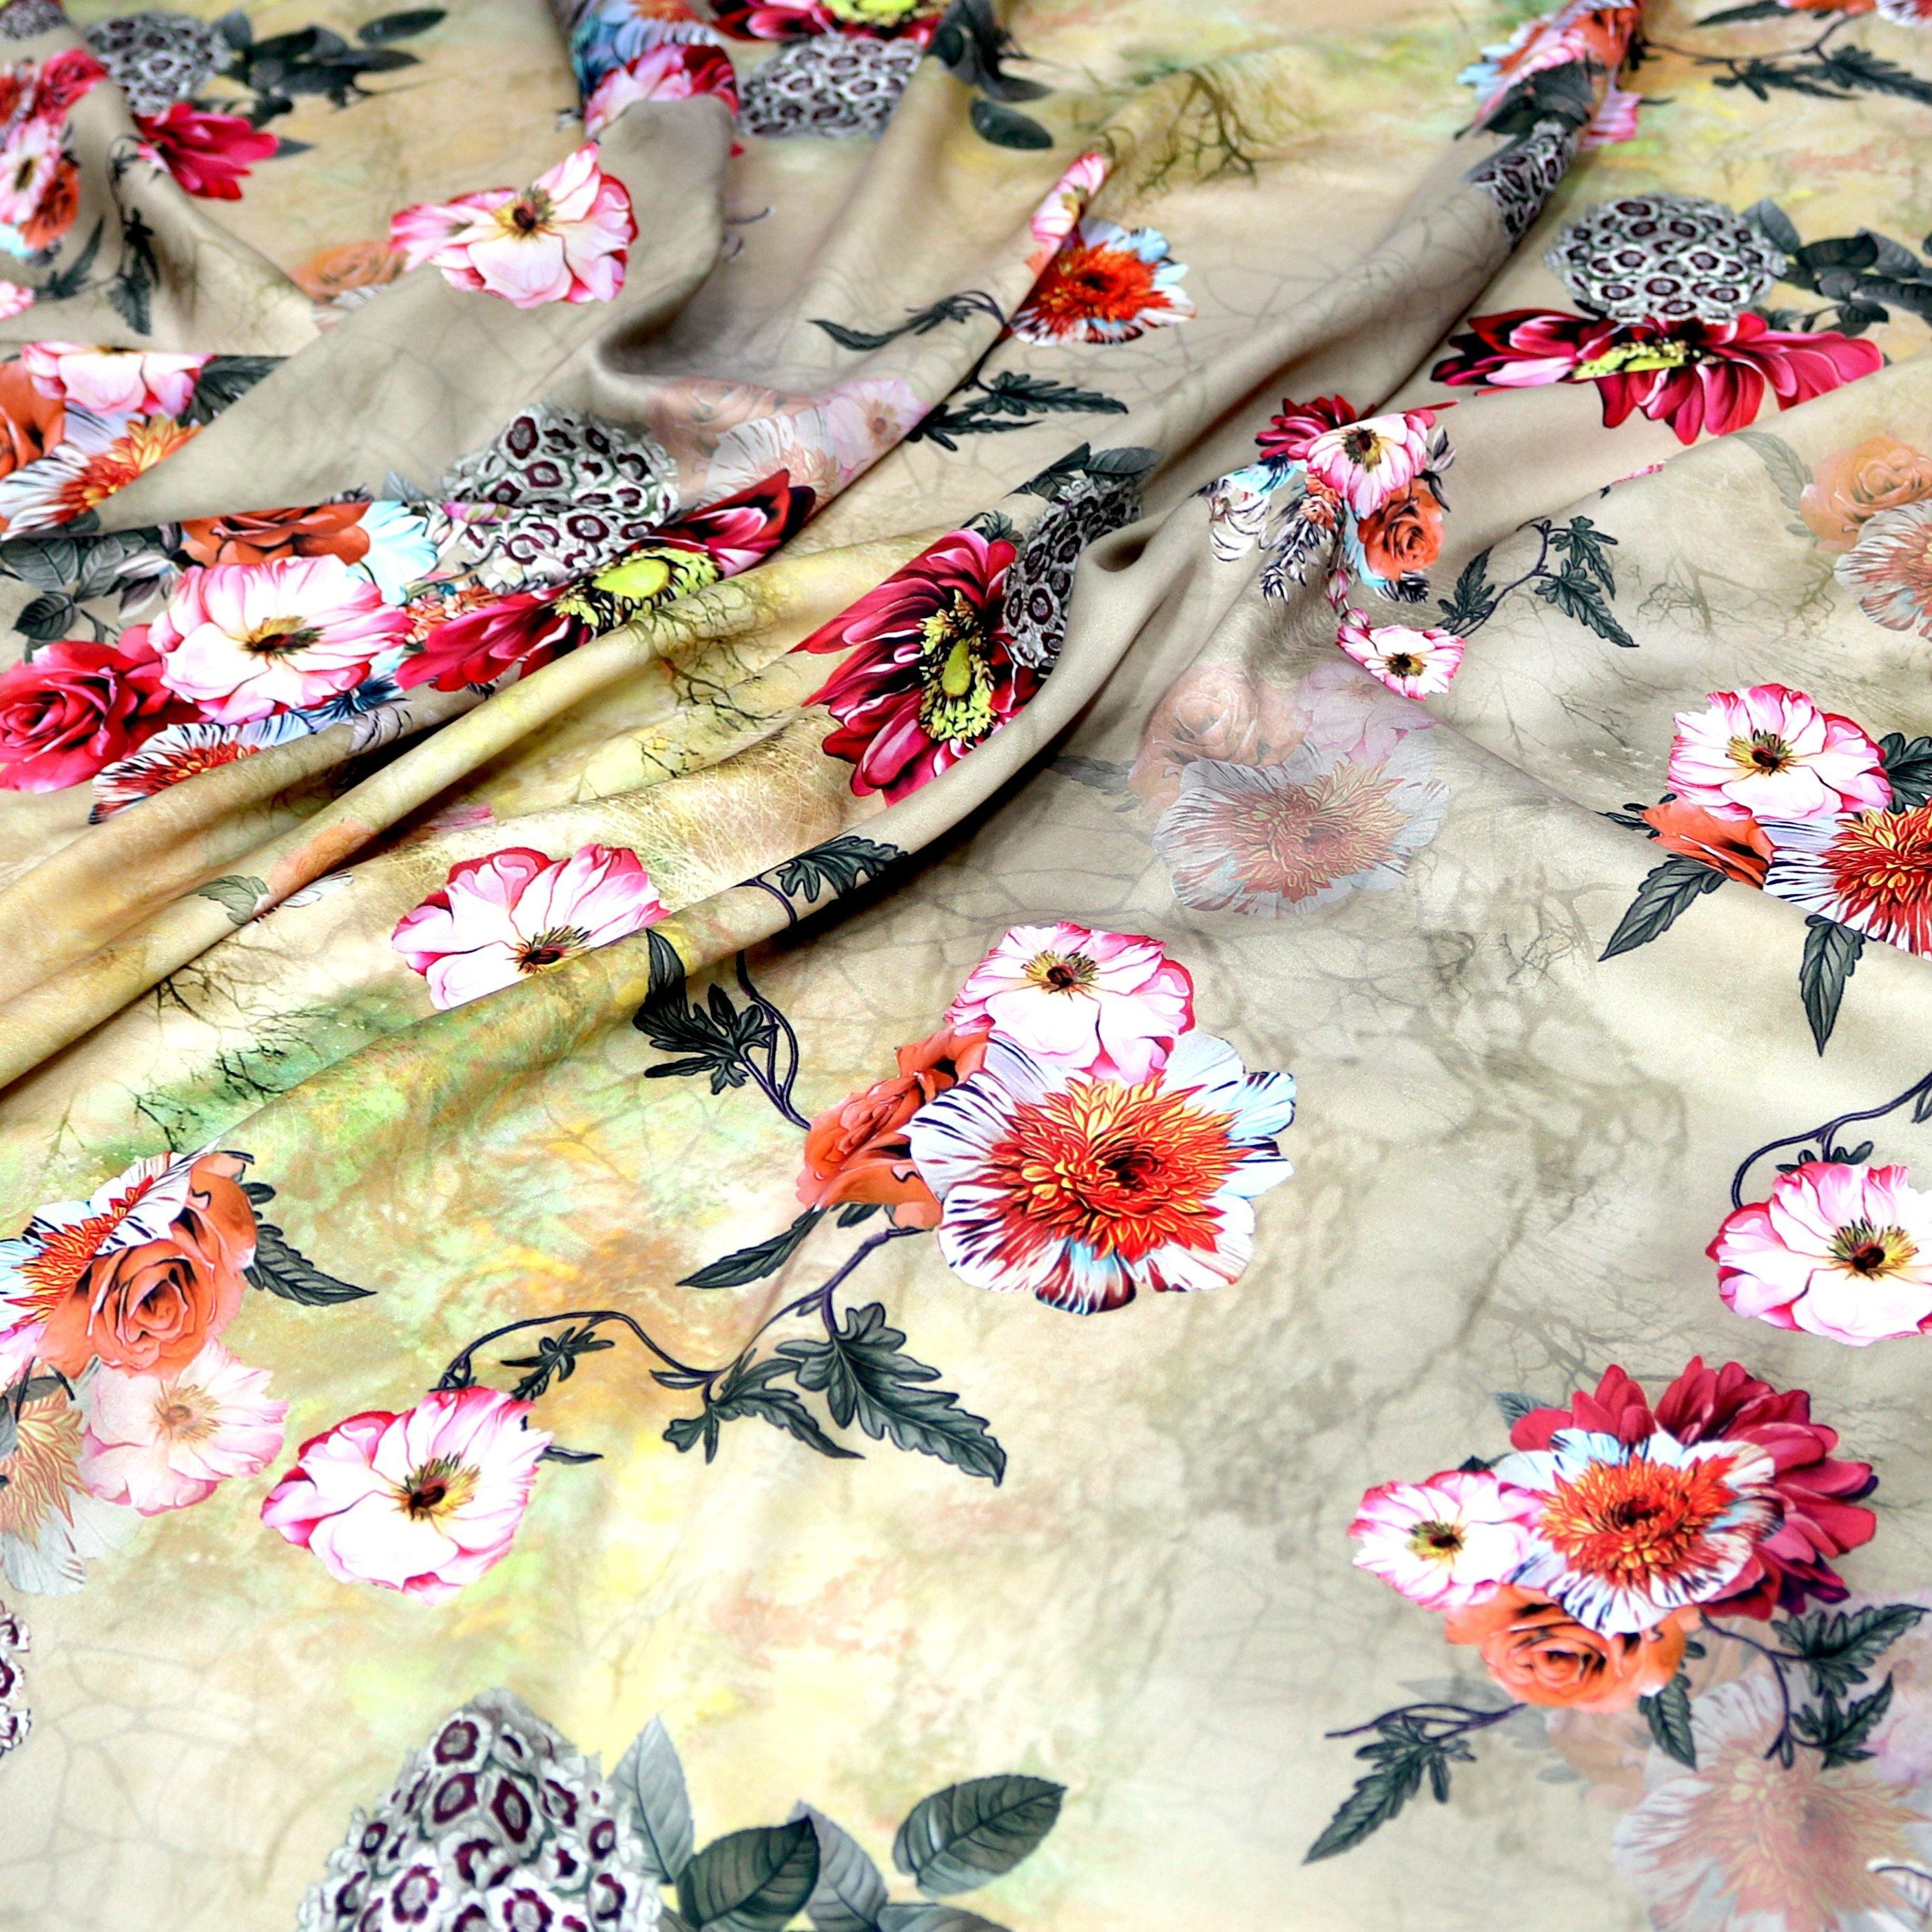 High Quality Multicolor Floral Digitally Printed Japan Satin Fabrics - FAB VOGUE Studio